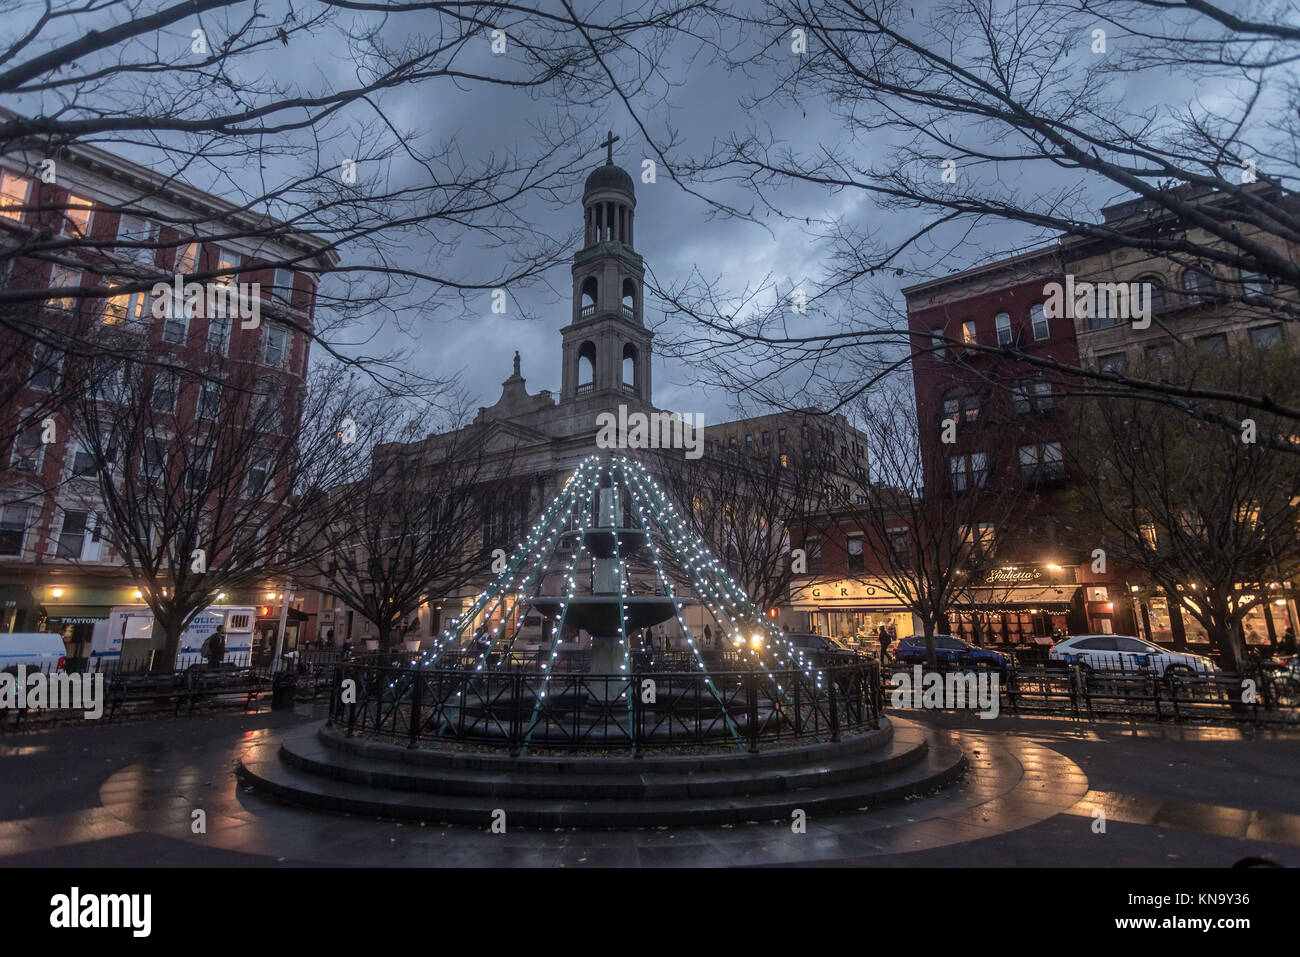 New York, NY, USA, Christmas lights on the fountain in Father Demo Square with Our Lady of Pompeii Catholic Church - Stock Image